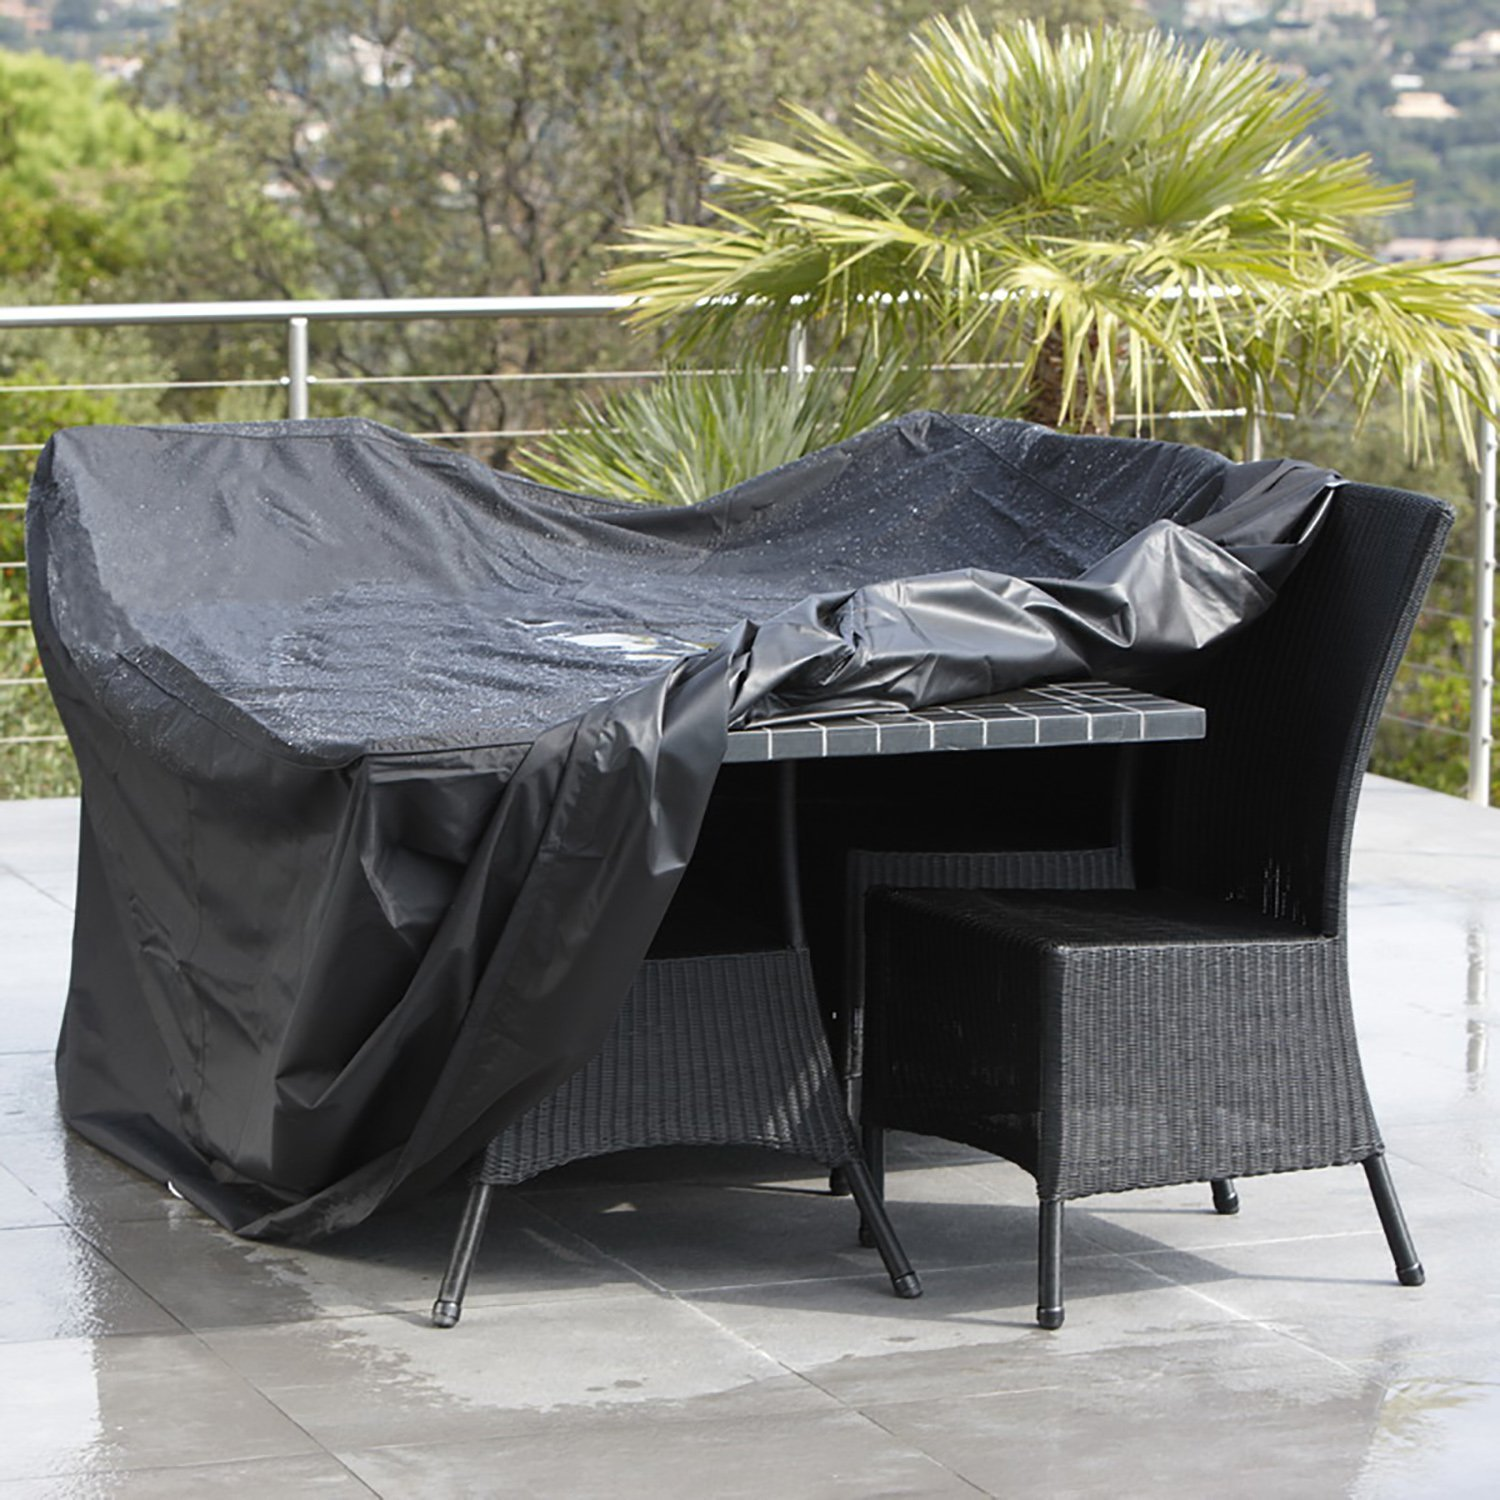 Buy Rectangular Patio Furniture Covers Waterproof Outdoor Lawn